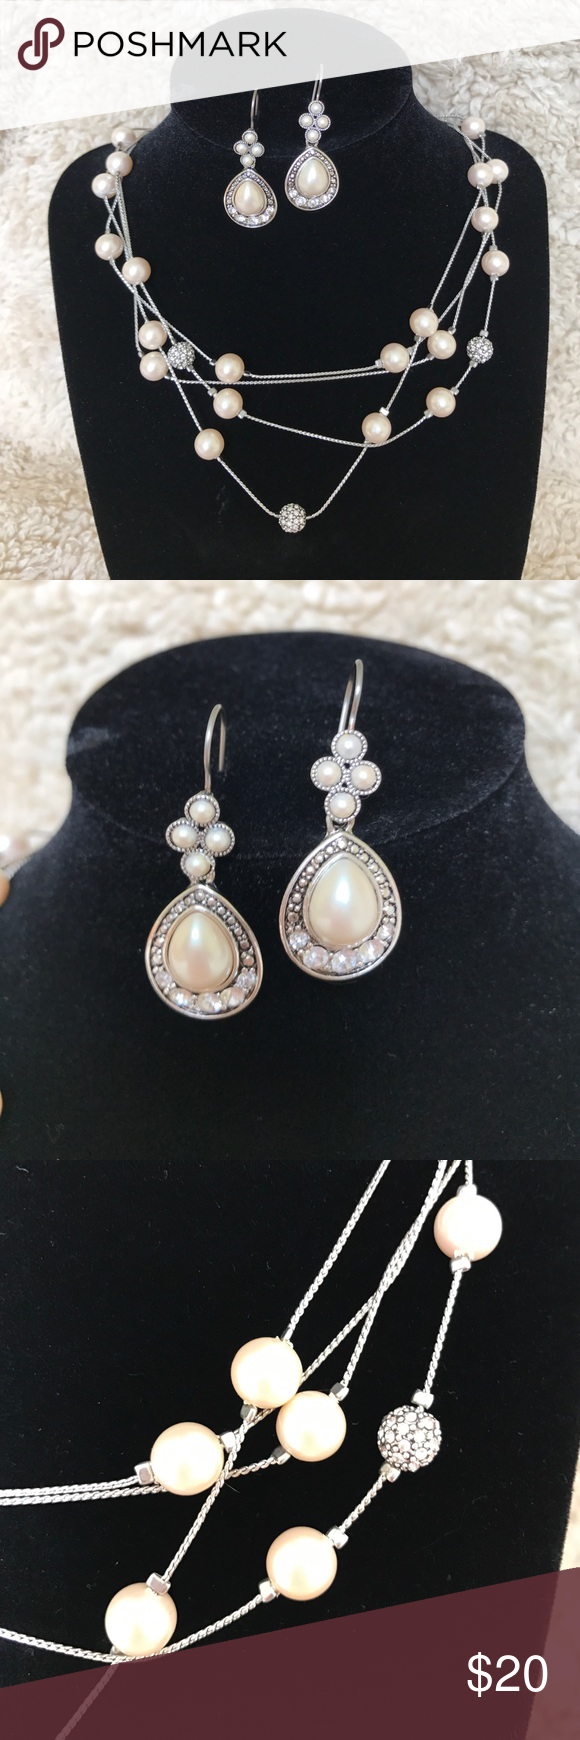 """🌺Sale🌺Pearl earring and necklace bundle. Faux pearl and rhinestone earring and necklace bundle. Perfect for prom/wedding season. Earrings measure 1-1/2"""" long. Necklace is adjustable and measures 17-1/2"""" at longest point. Excellent condition. Jewelry Necklaces"""